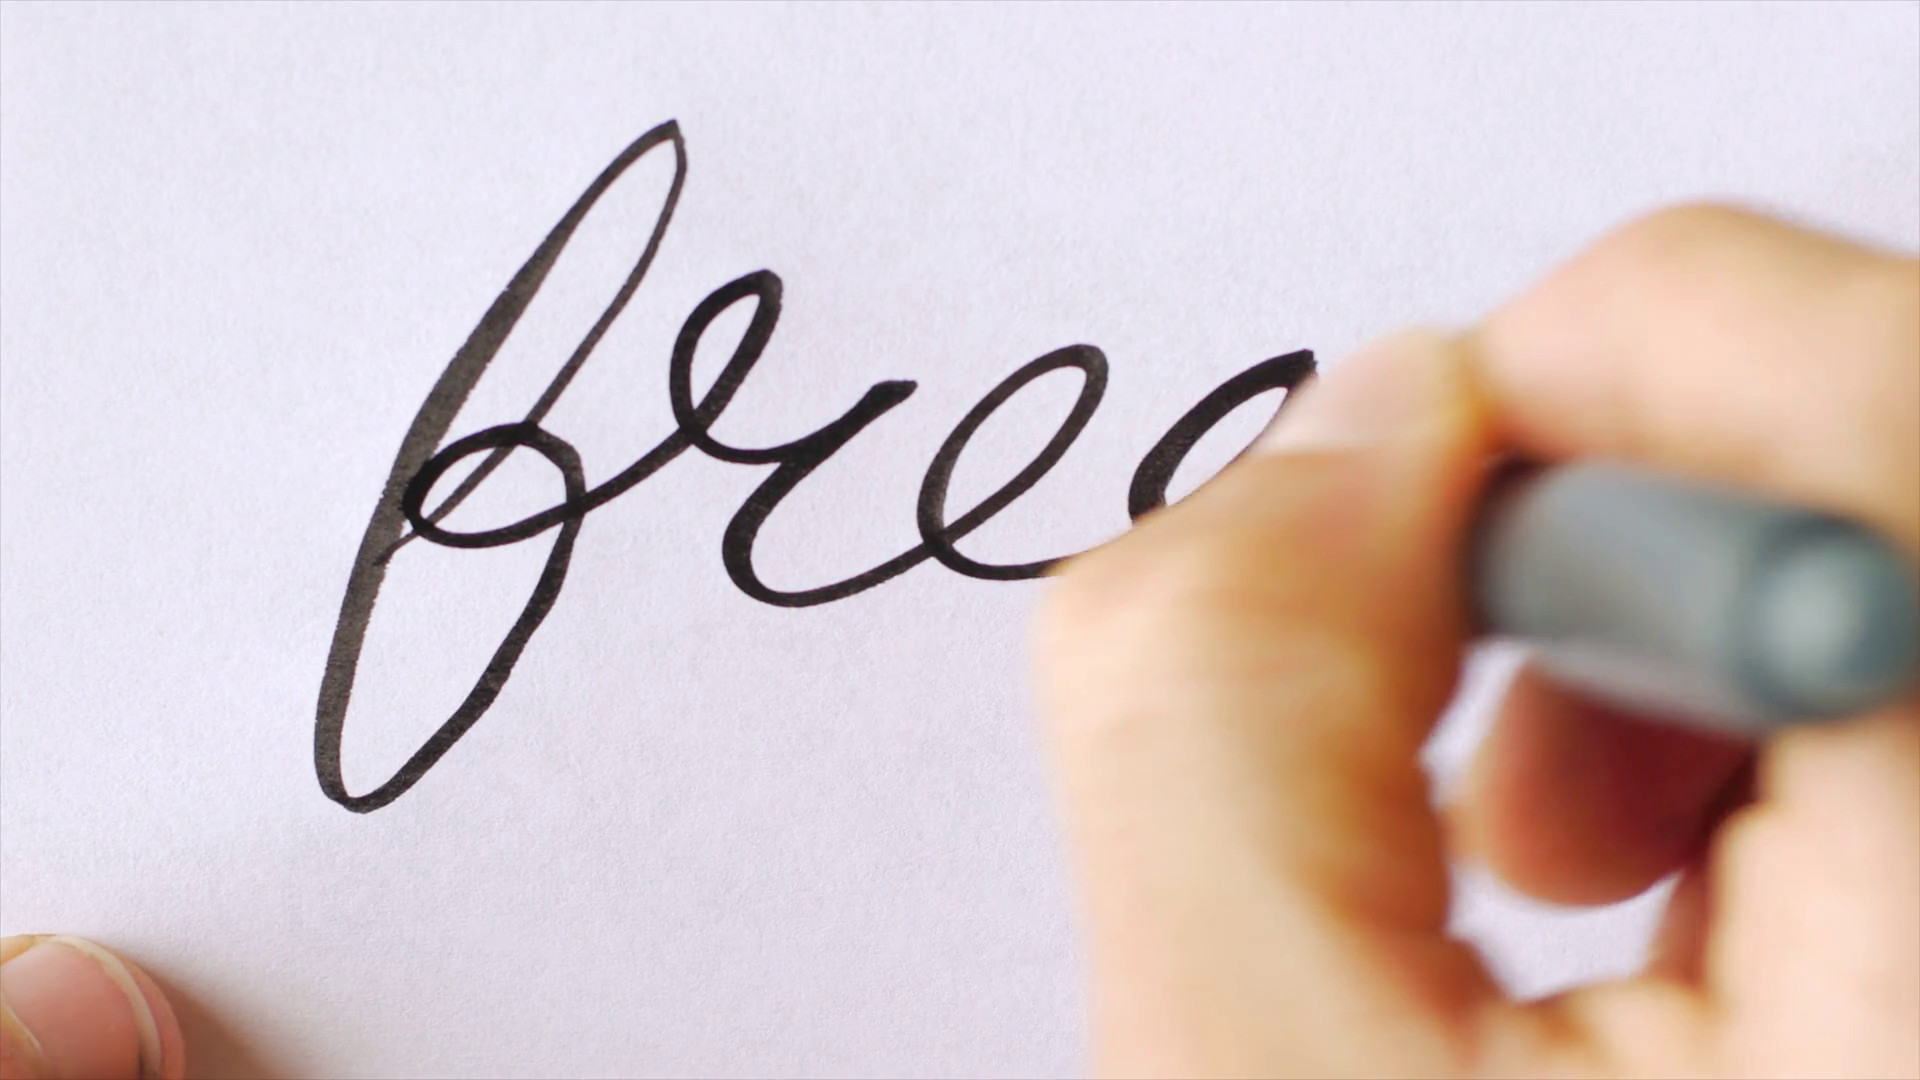 1920x1080 Hand writing the word FREE in cursive with a black brush pen on white paper  Stock Video Footage - Storyblocks Video